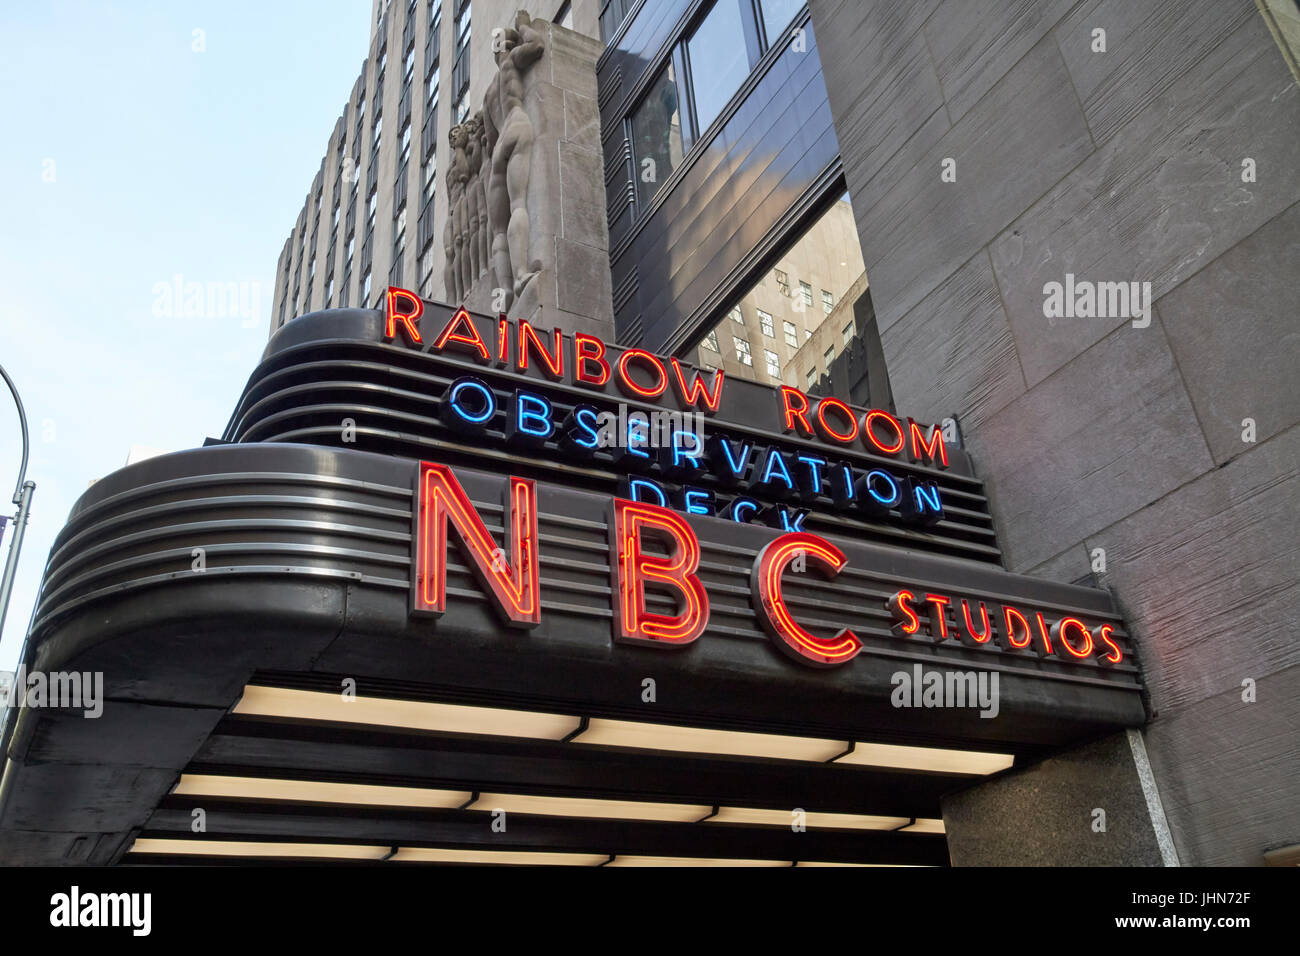 sign for nbc studios and the rainbow room observation deck comcast building New York City USA - Stock Image